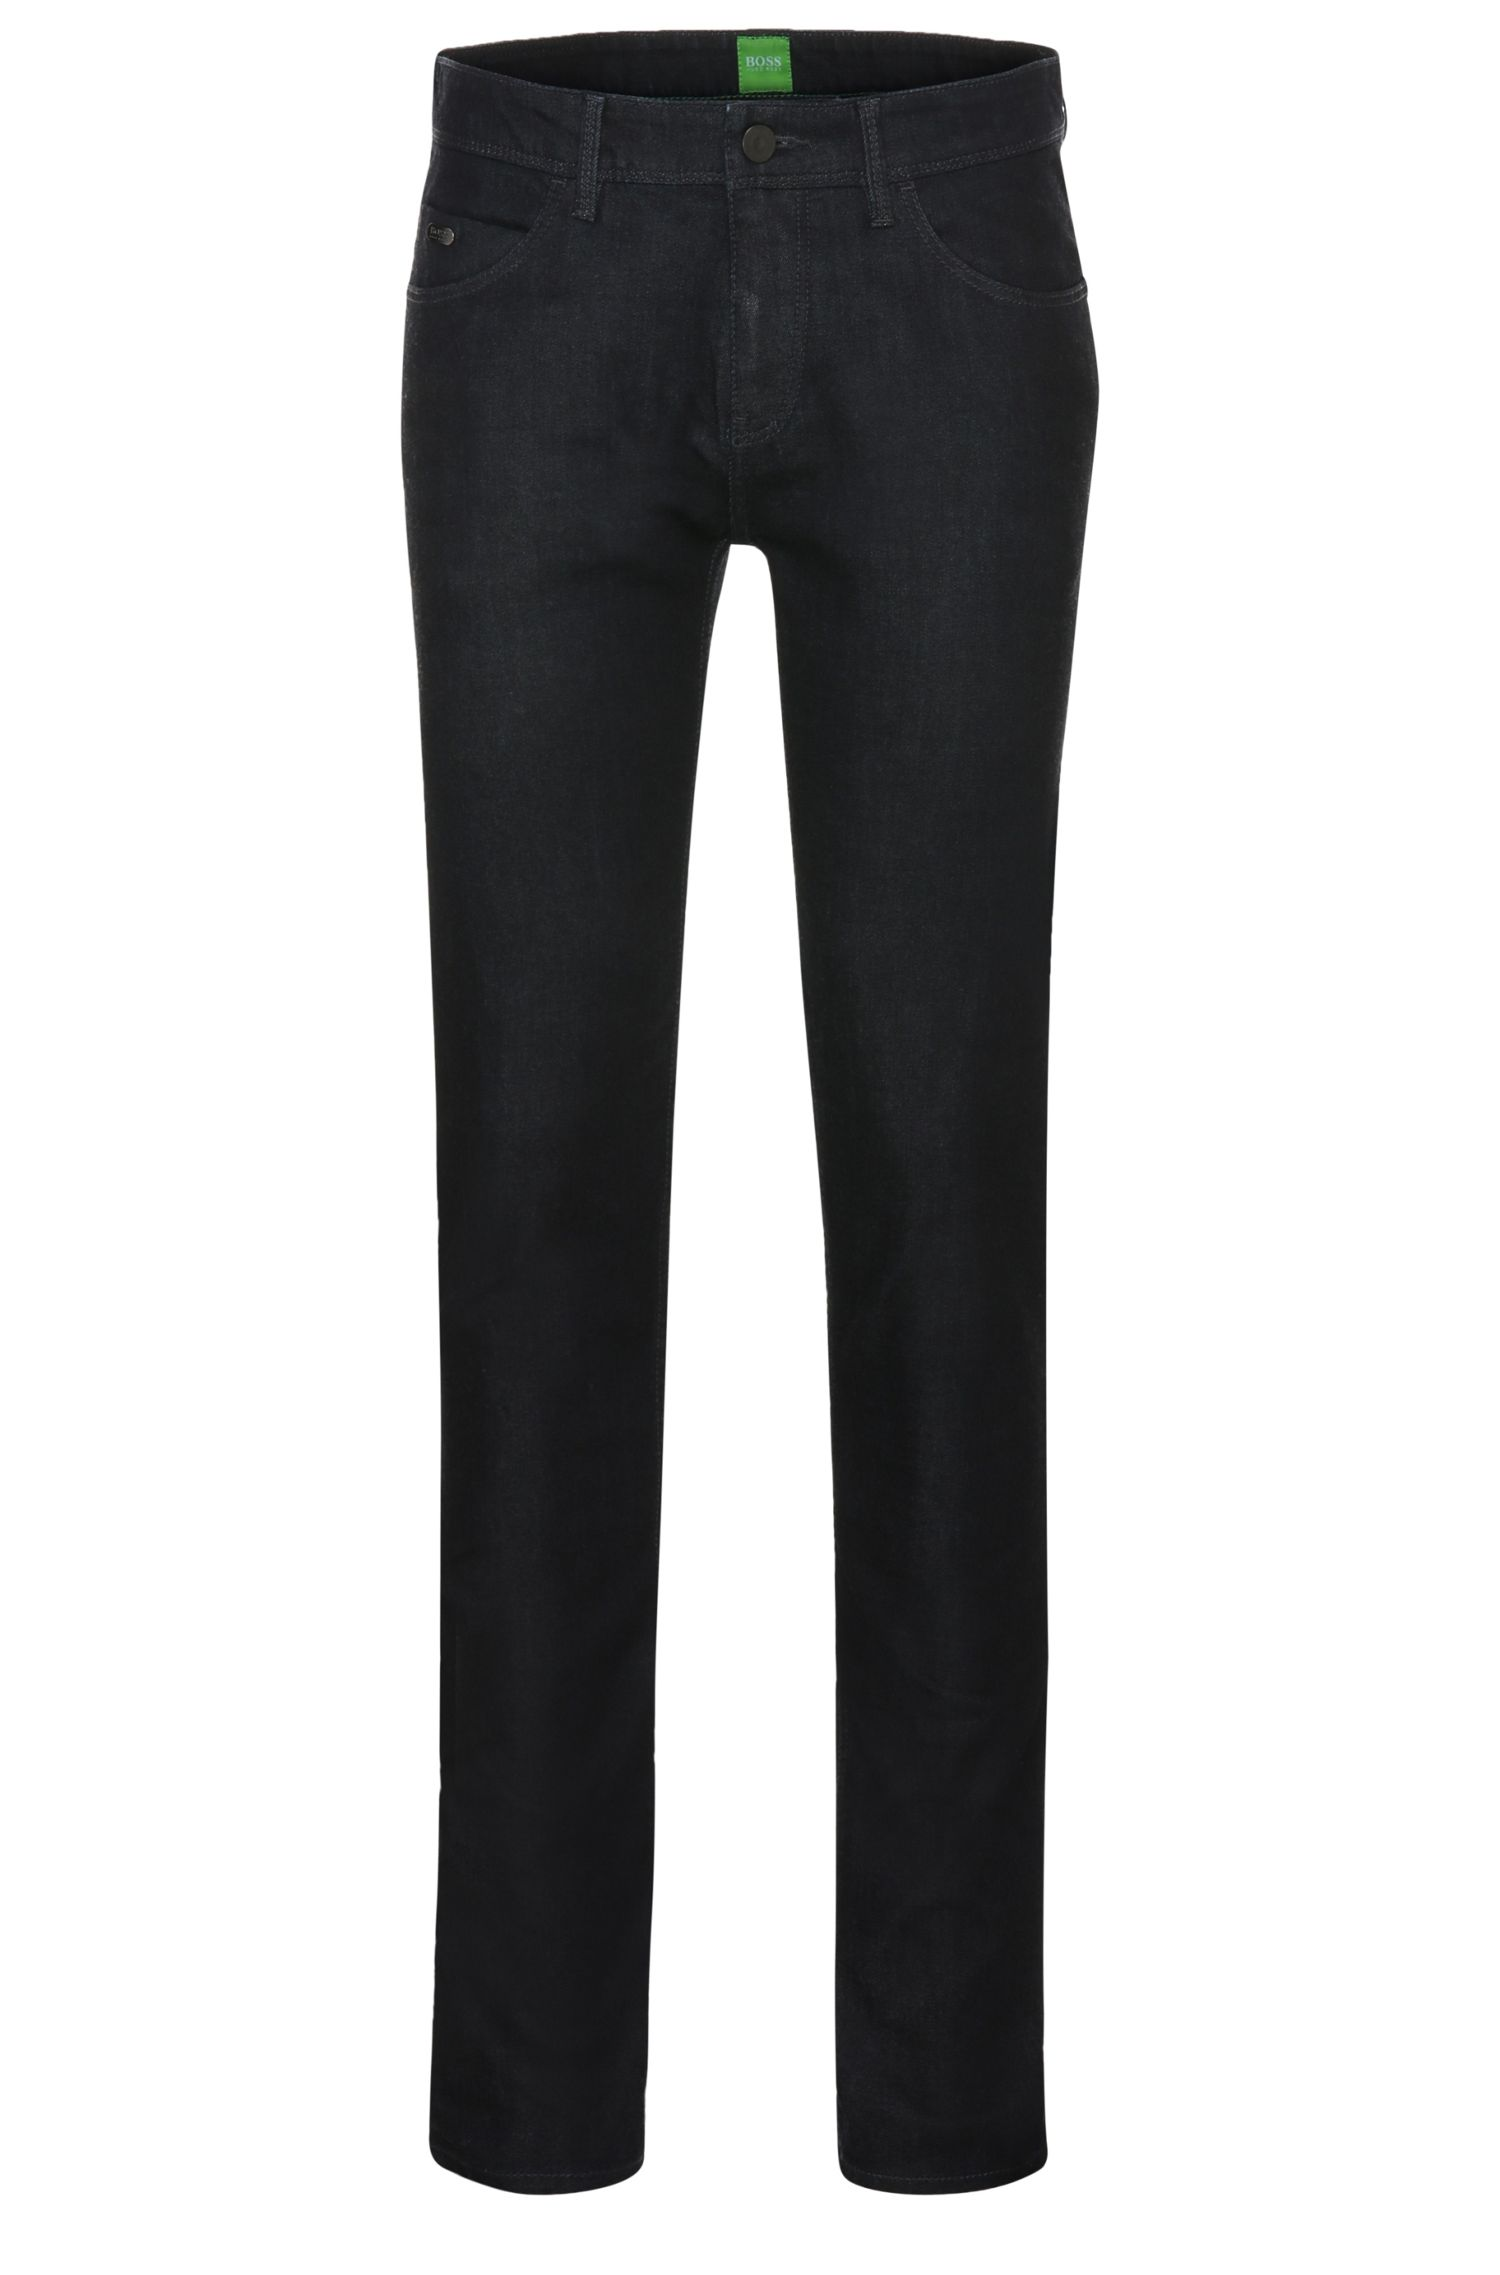 Extra-slim-fit jeans in stretch cotton blend: 'Dayan'